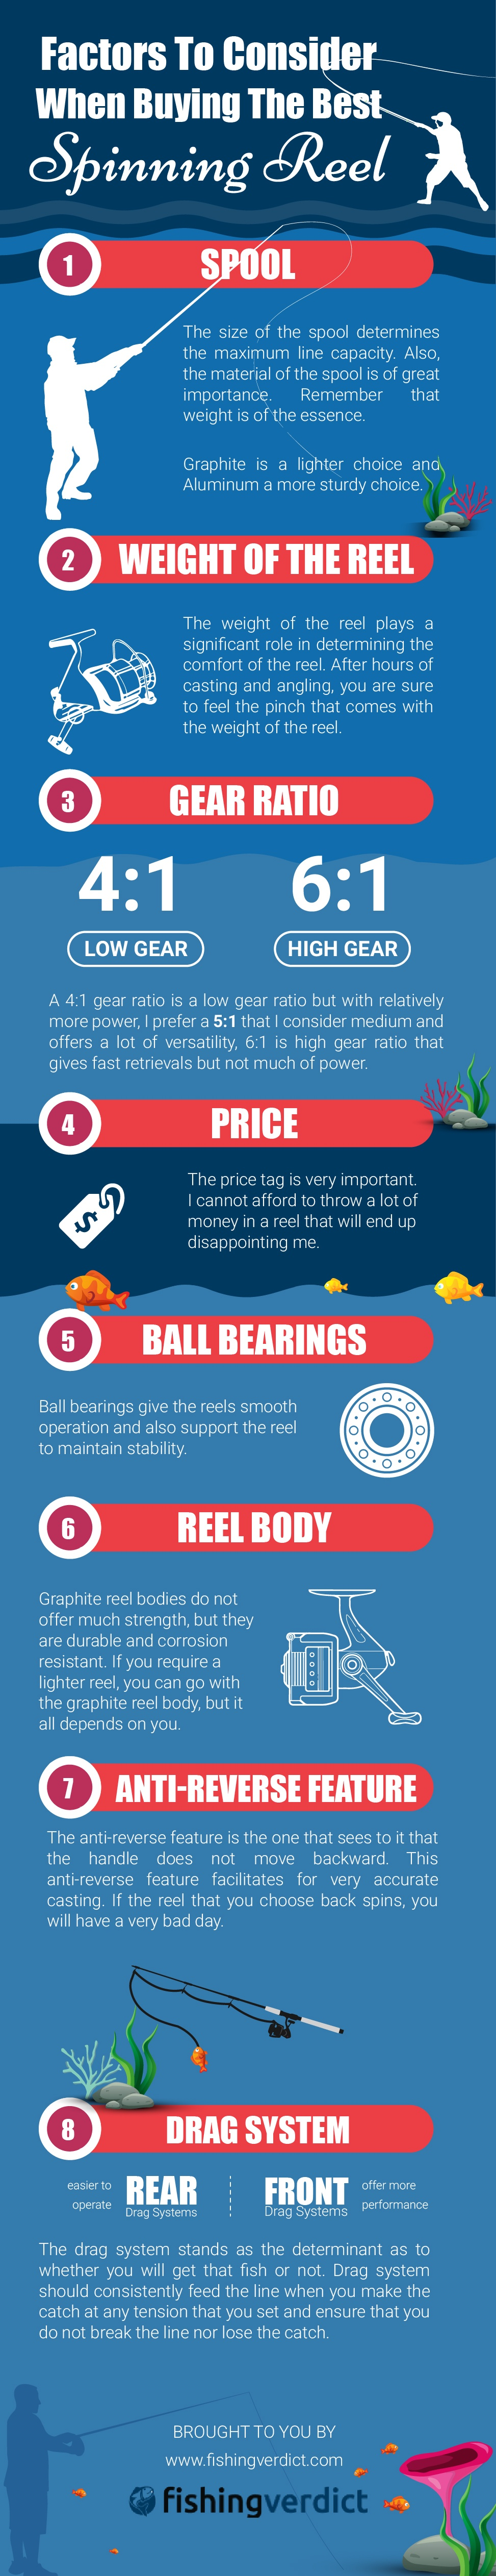 Things To Consider When Buying Polarised Fishing Sunglasses Infographic